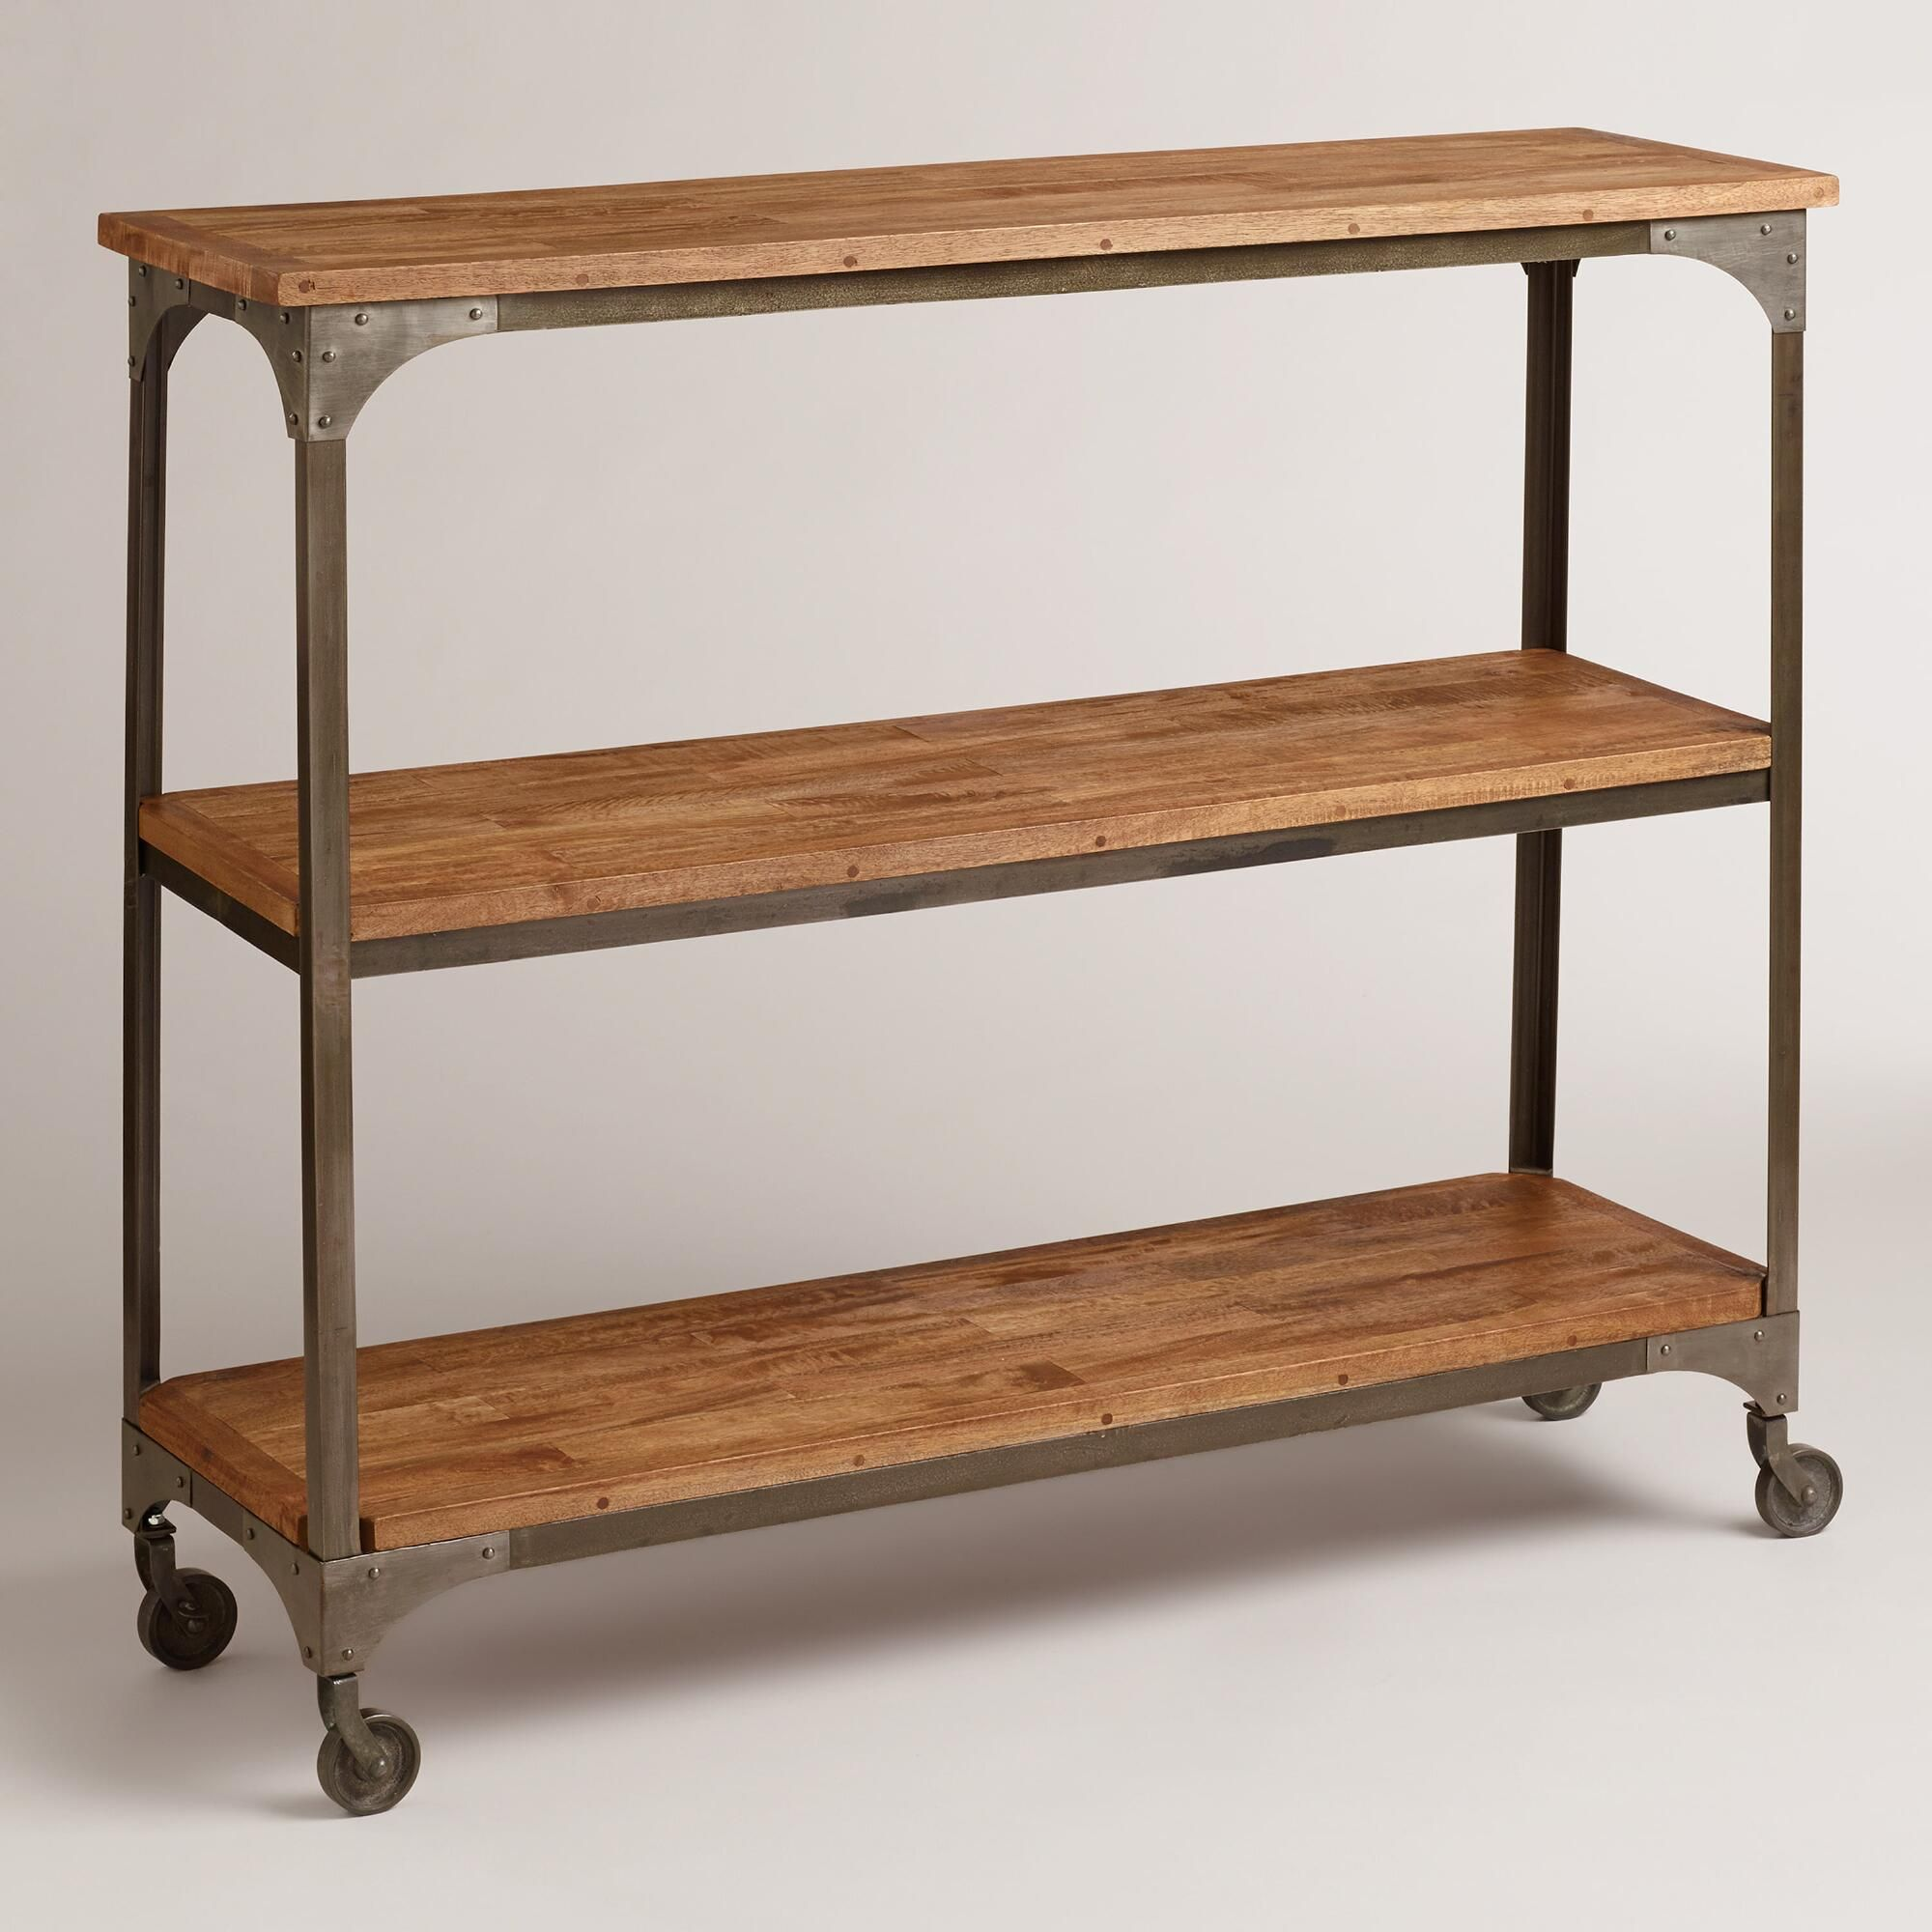 Wood And Metal Console Part - 31: Wood And Metal Aiden Console Table: Brown/Metallic By World Market